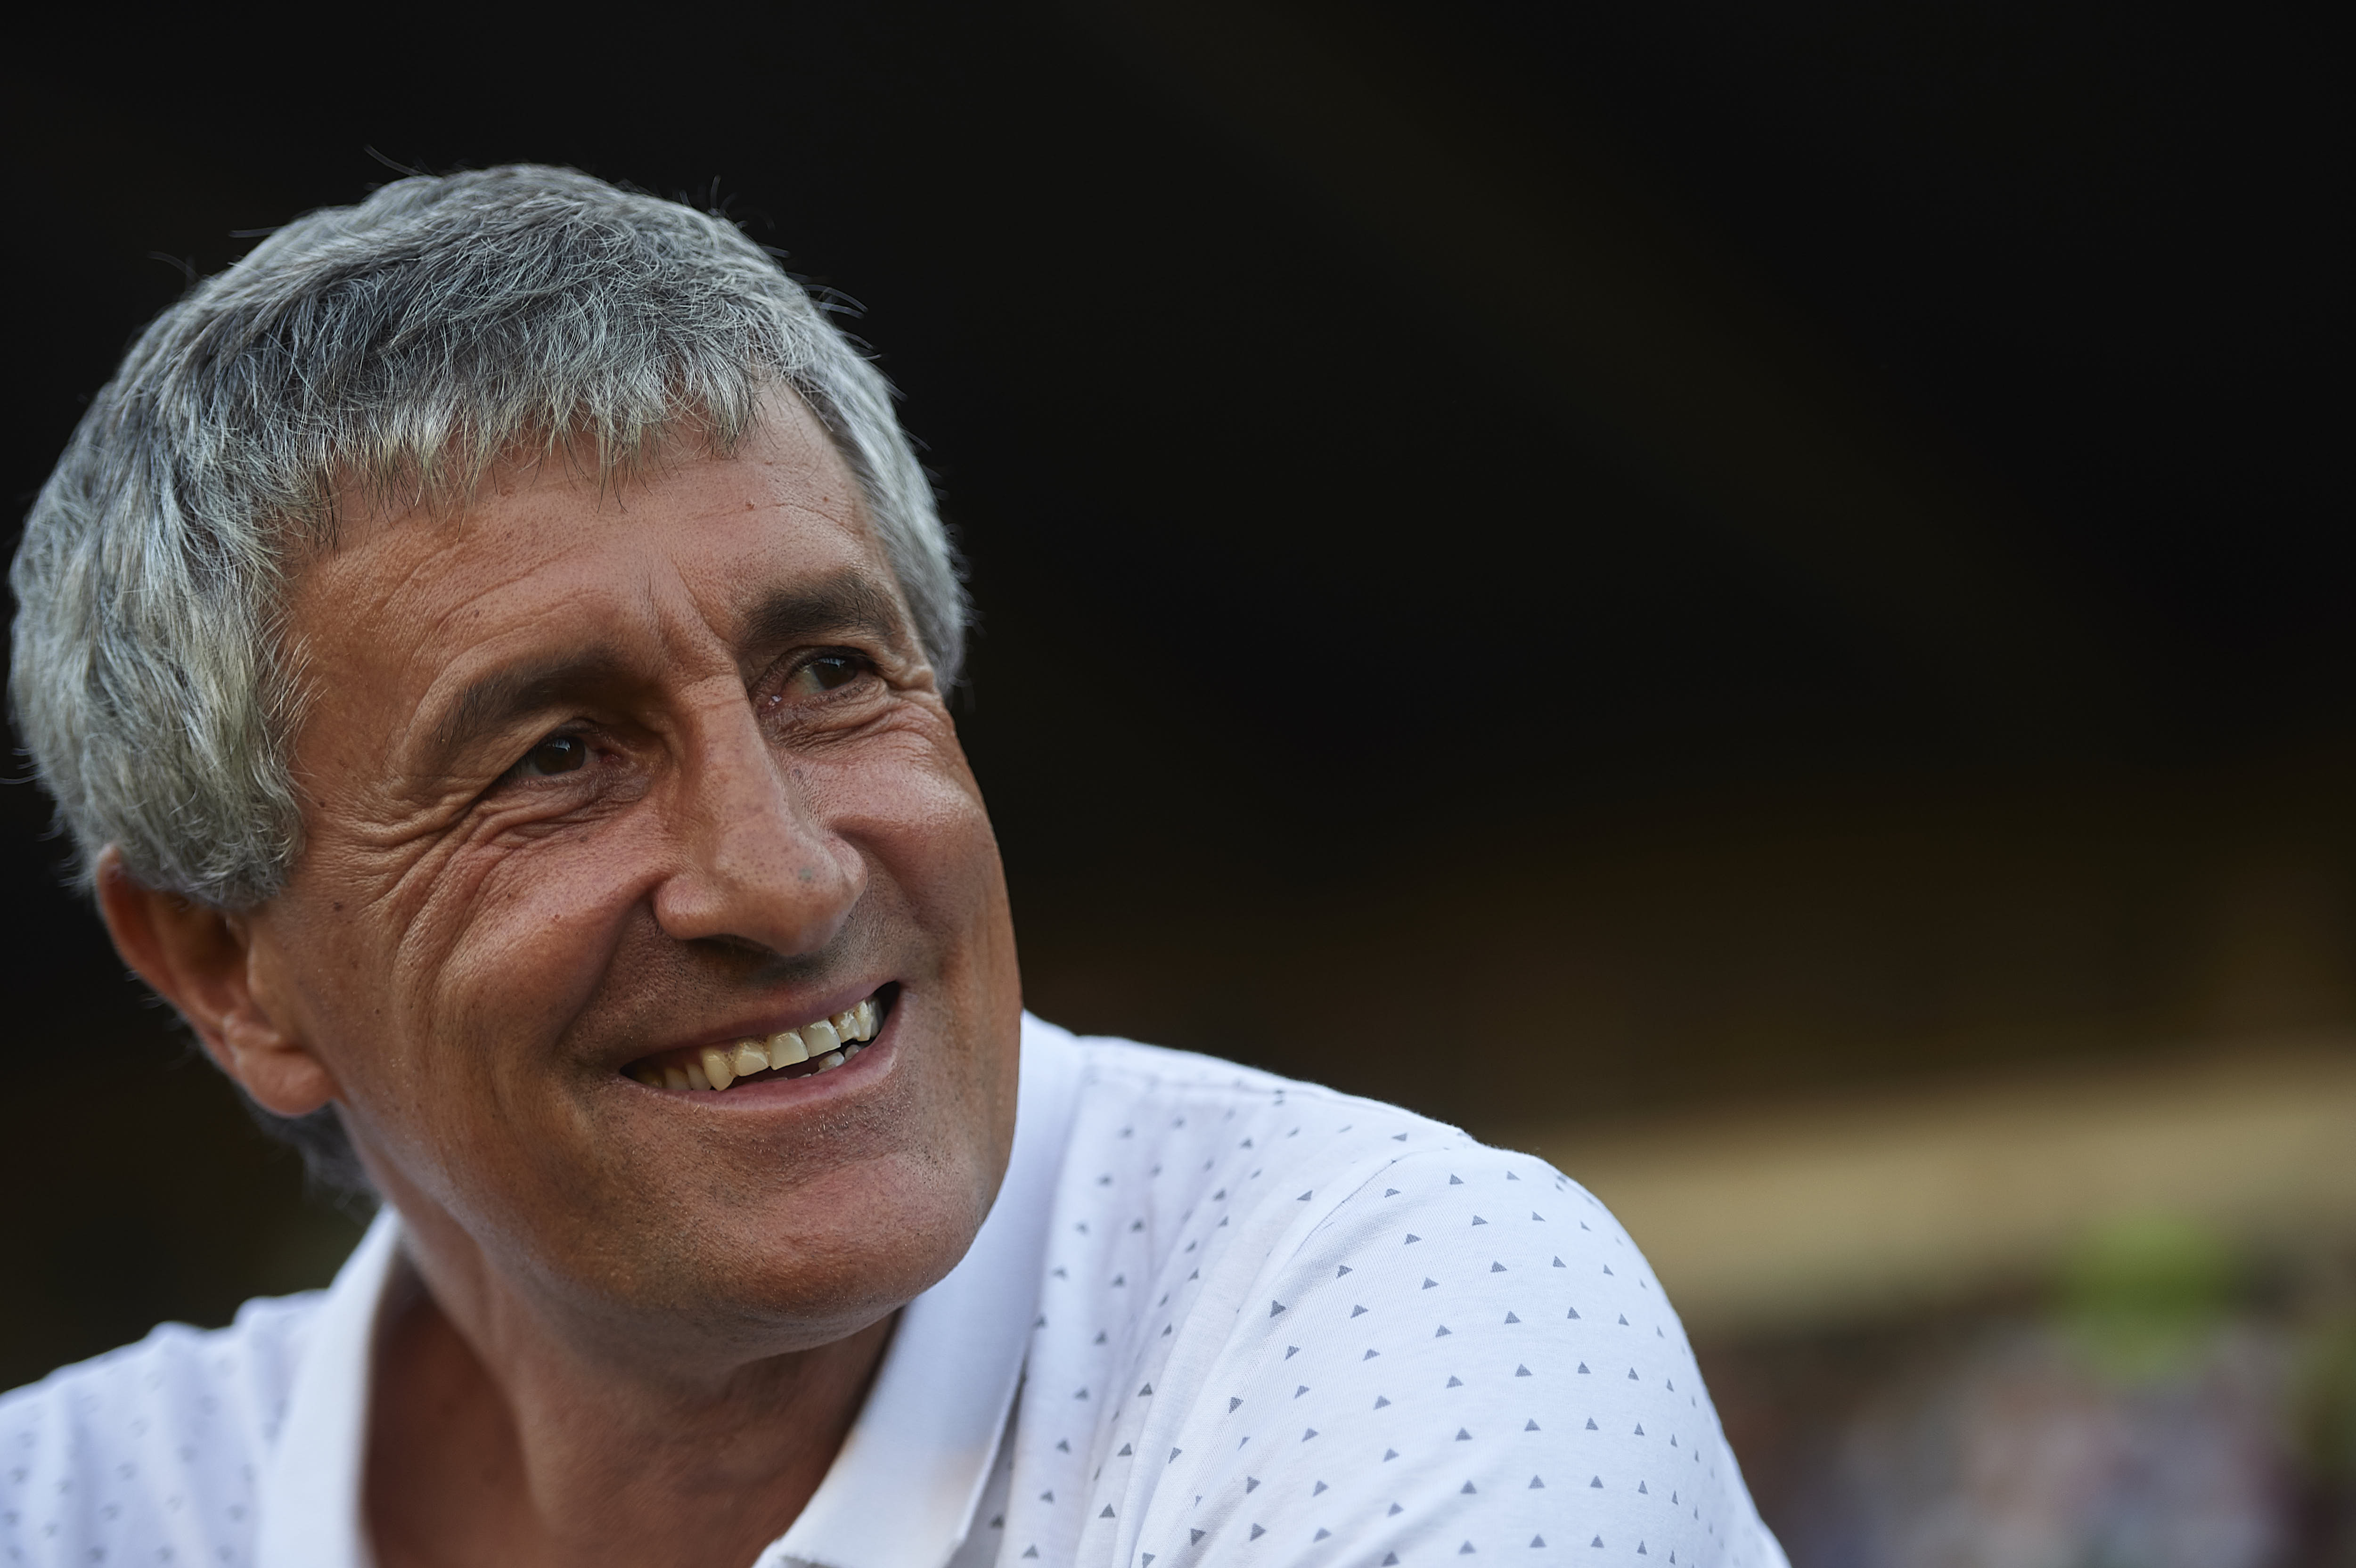 Setien's eye catching style of football is winning many admirers. (Photo by Aitor Alcalde/Getty Images)